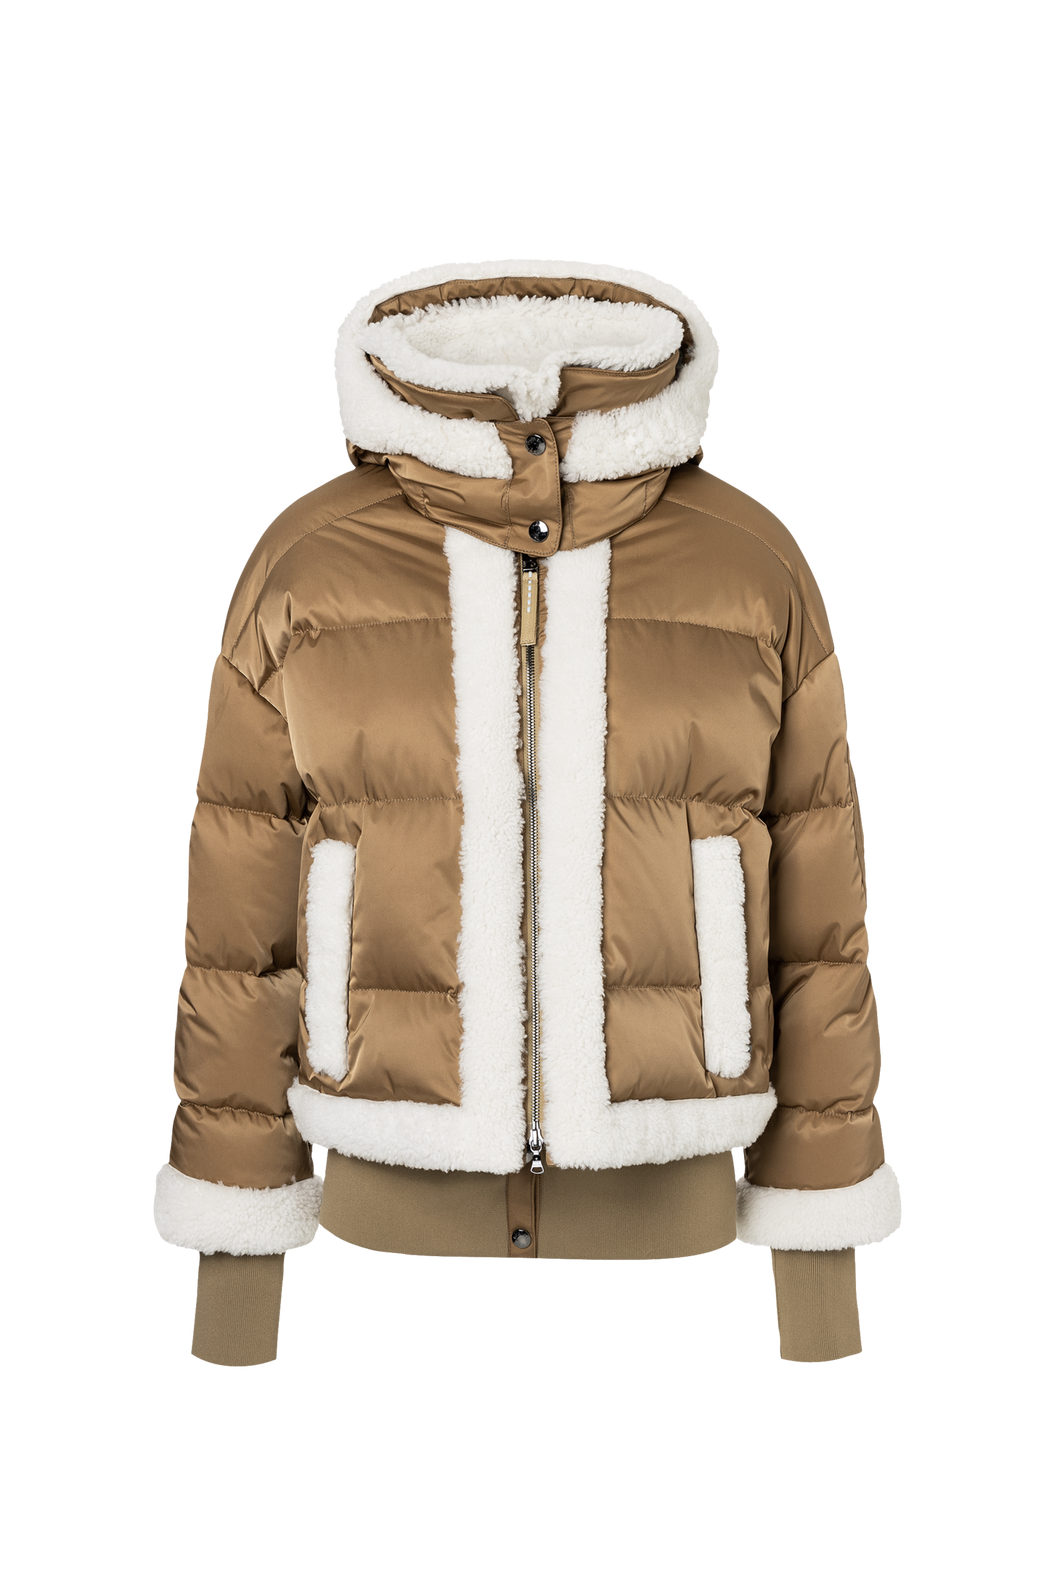 Suza-Ld 2-Layer Stretch Ski Jacket - Brown